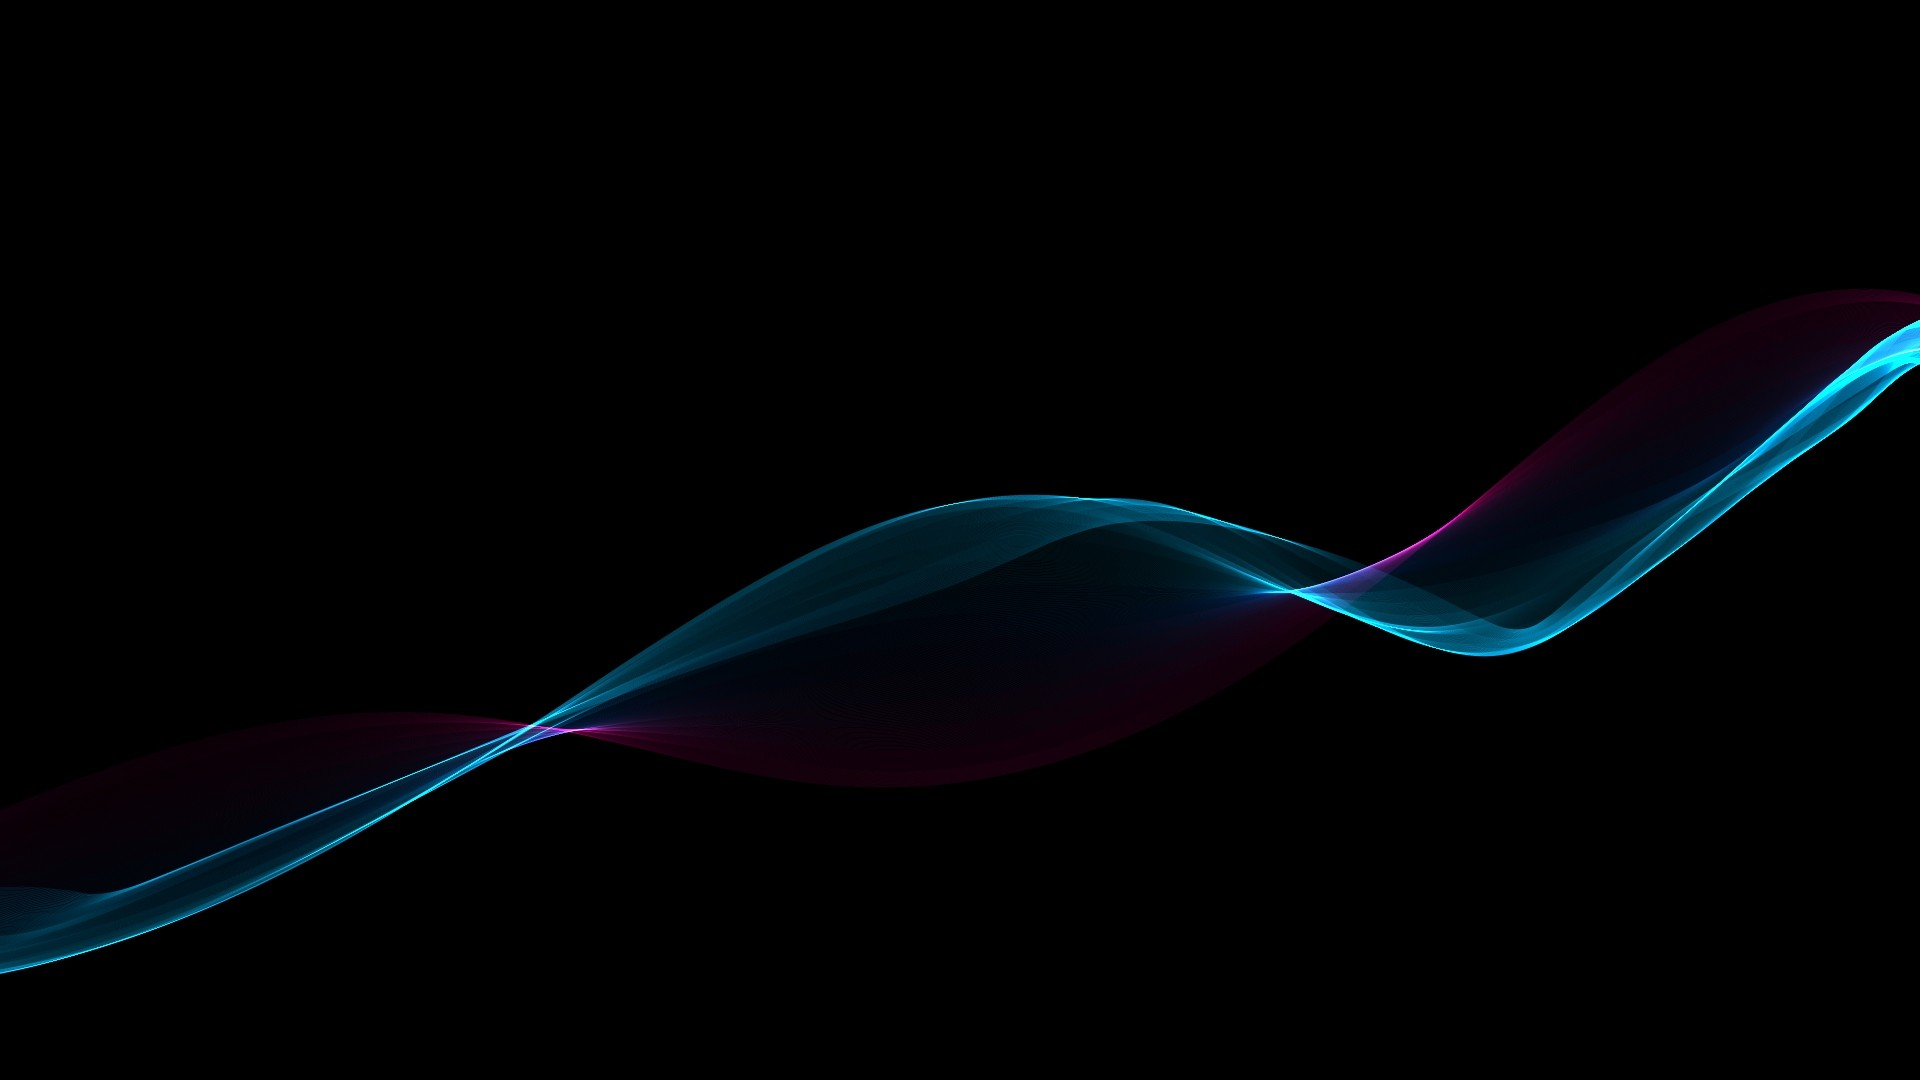 Black Abstract Wallpaper 3116 Hd Wallpapers in Abstract   Imagescicom 1920x1080